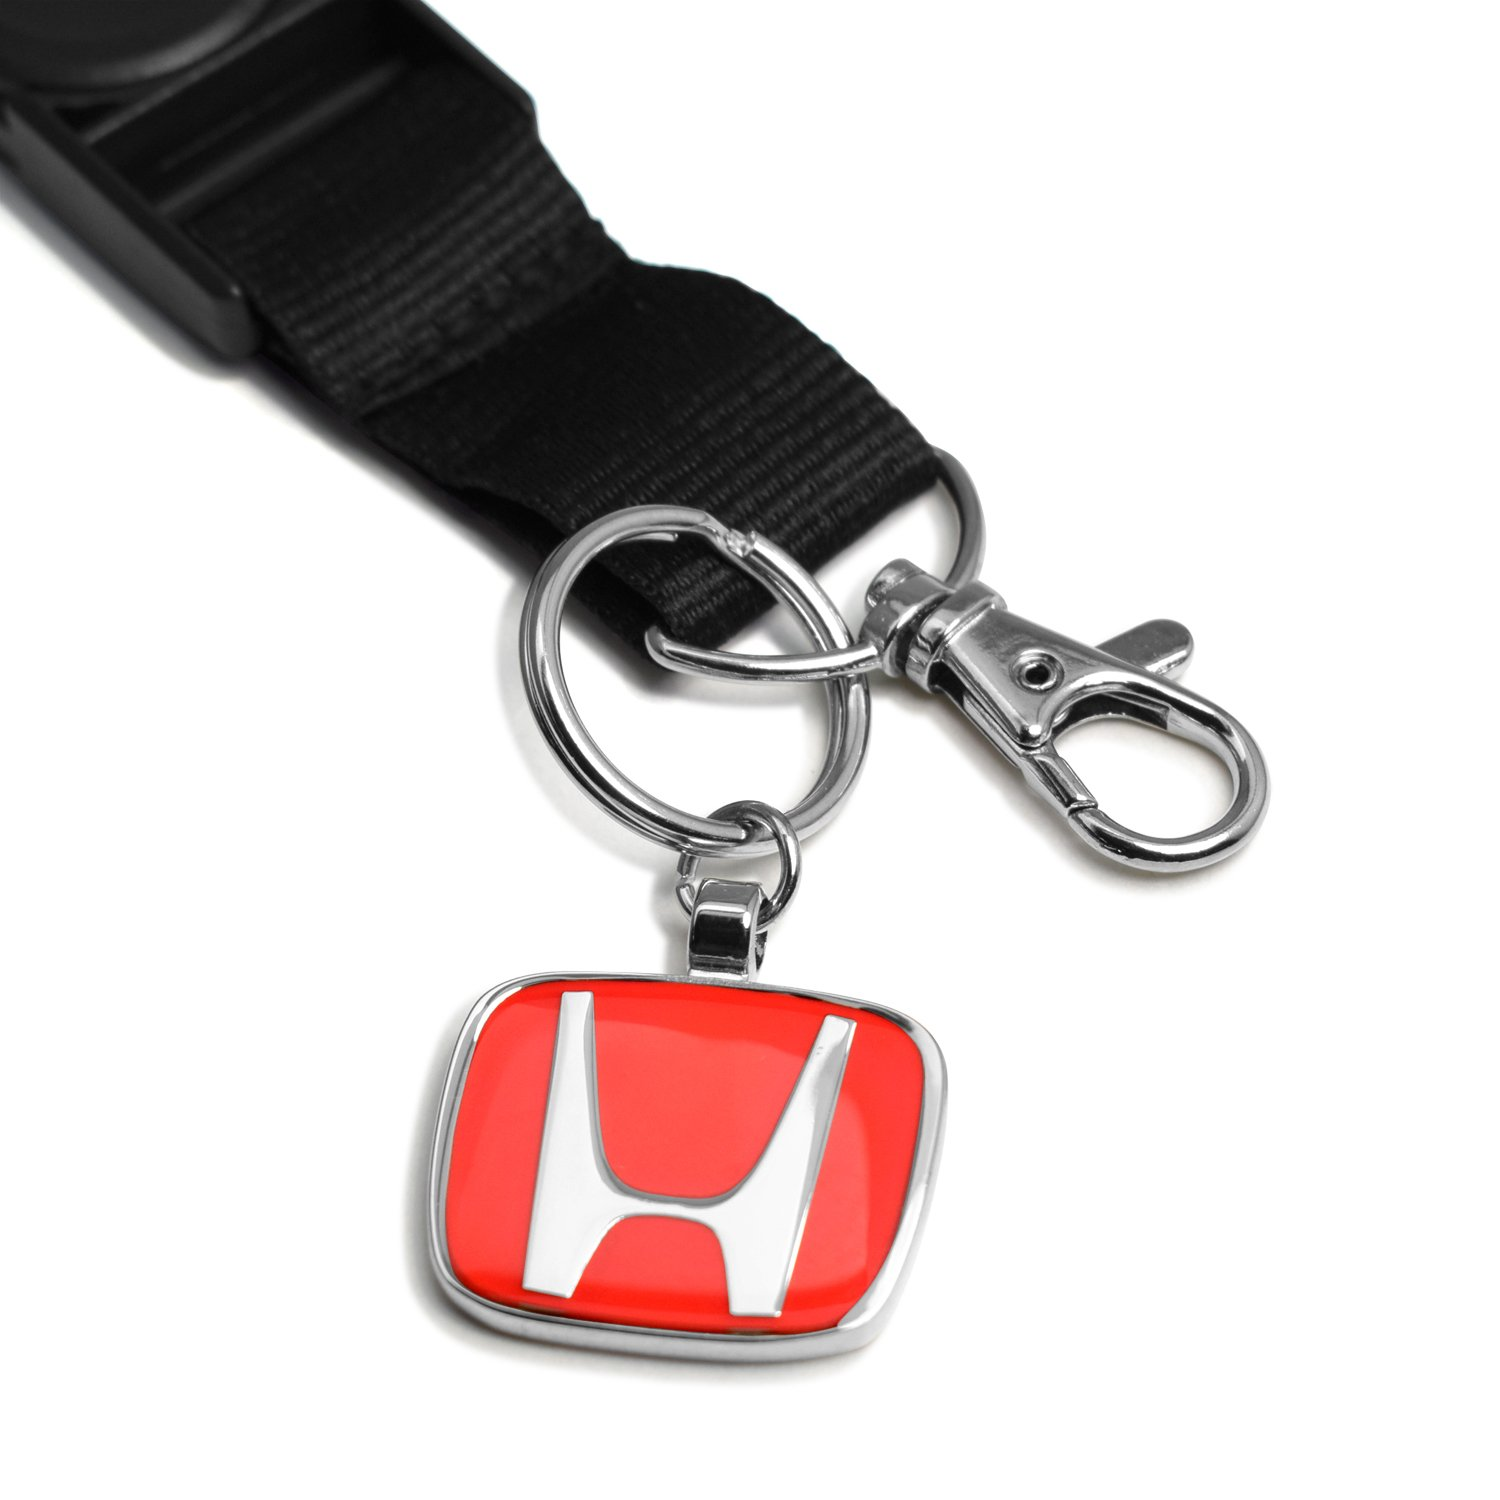 iPick Image Black Nylon Lanyard with Red H Logo Key Charm Honda